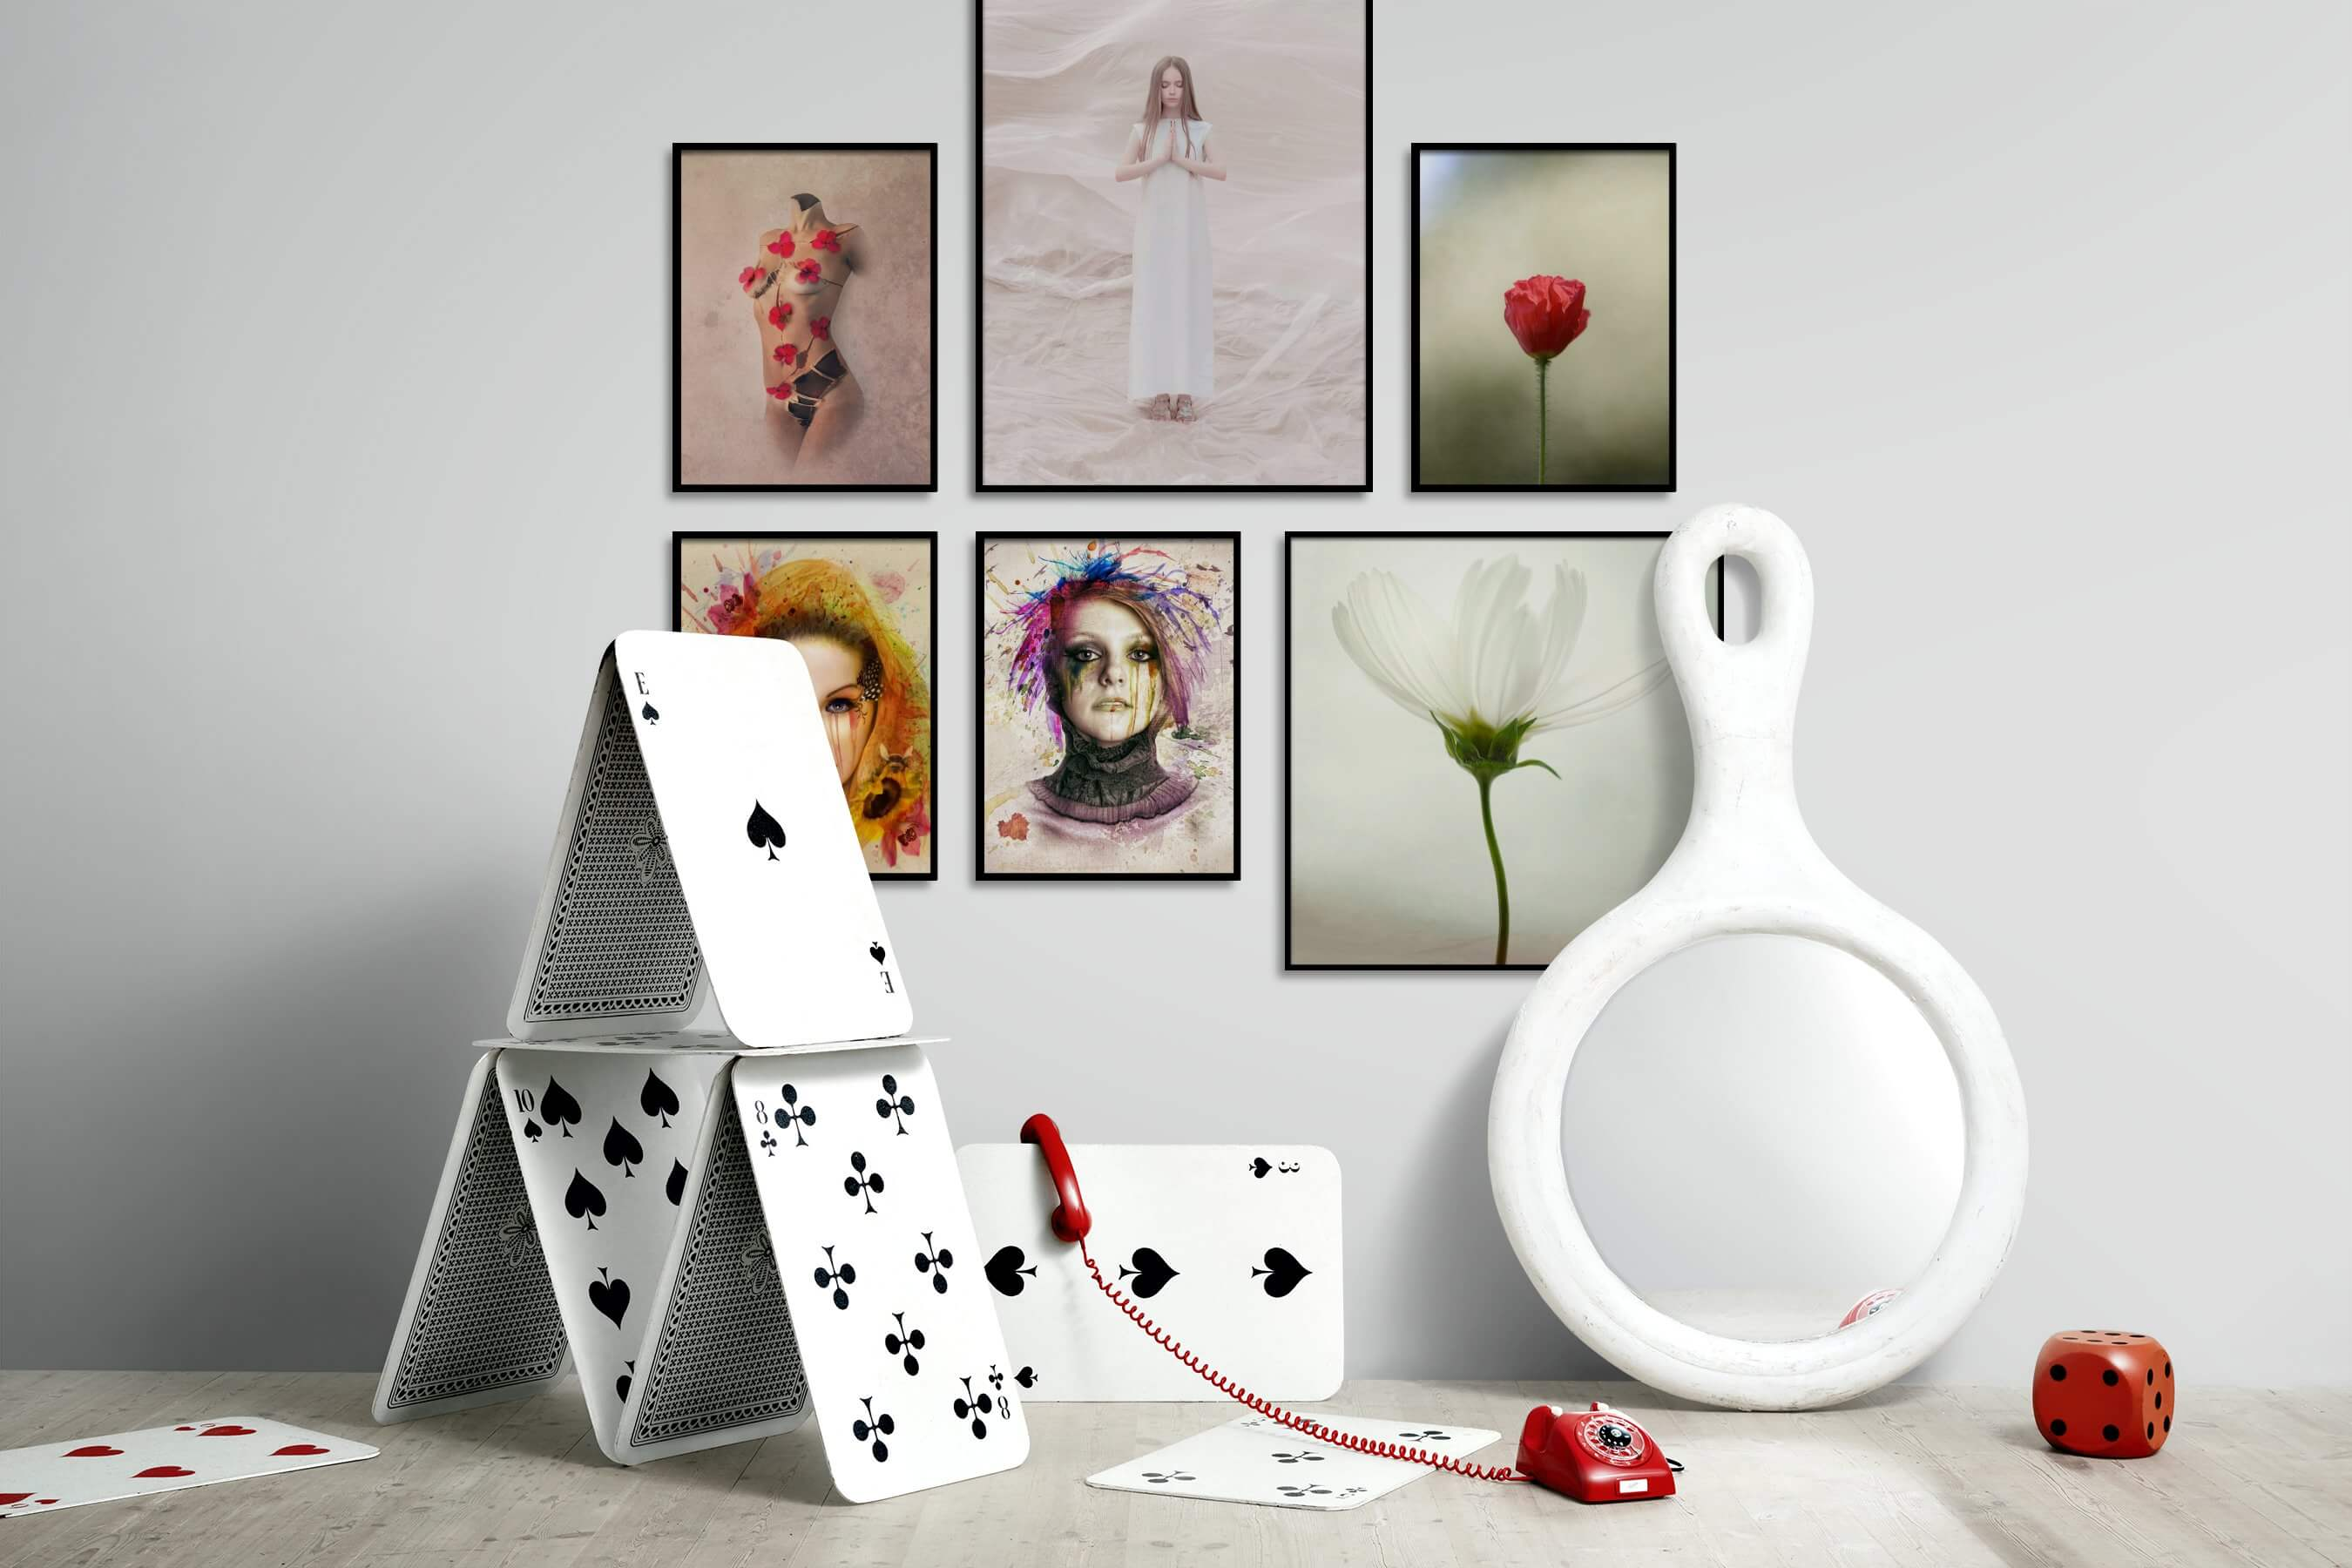 Gallery wall idea with six framed pictures arranged on a wall depicting Artsy, Fashion & Beauty, For the Minimalist, Flowers & Plants, and Vintage